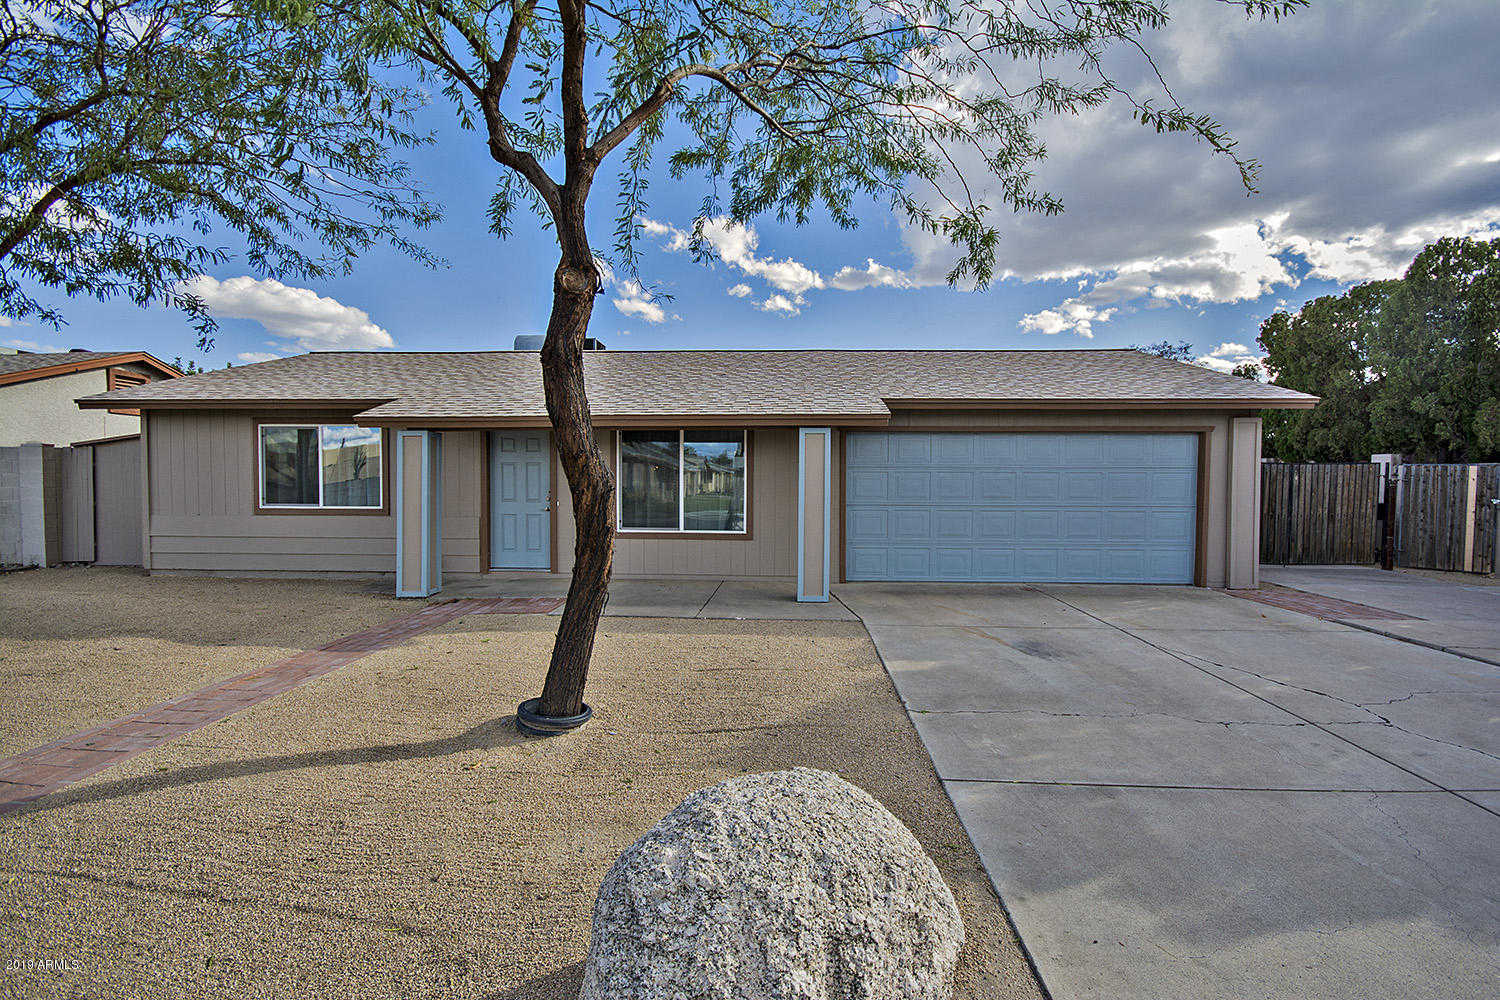 $200,000 - 2Br/2Ba - Home for Sale in Parkview West Unit One Lot 1-111, Glendale